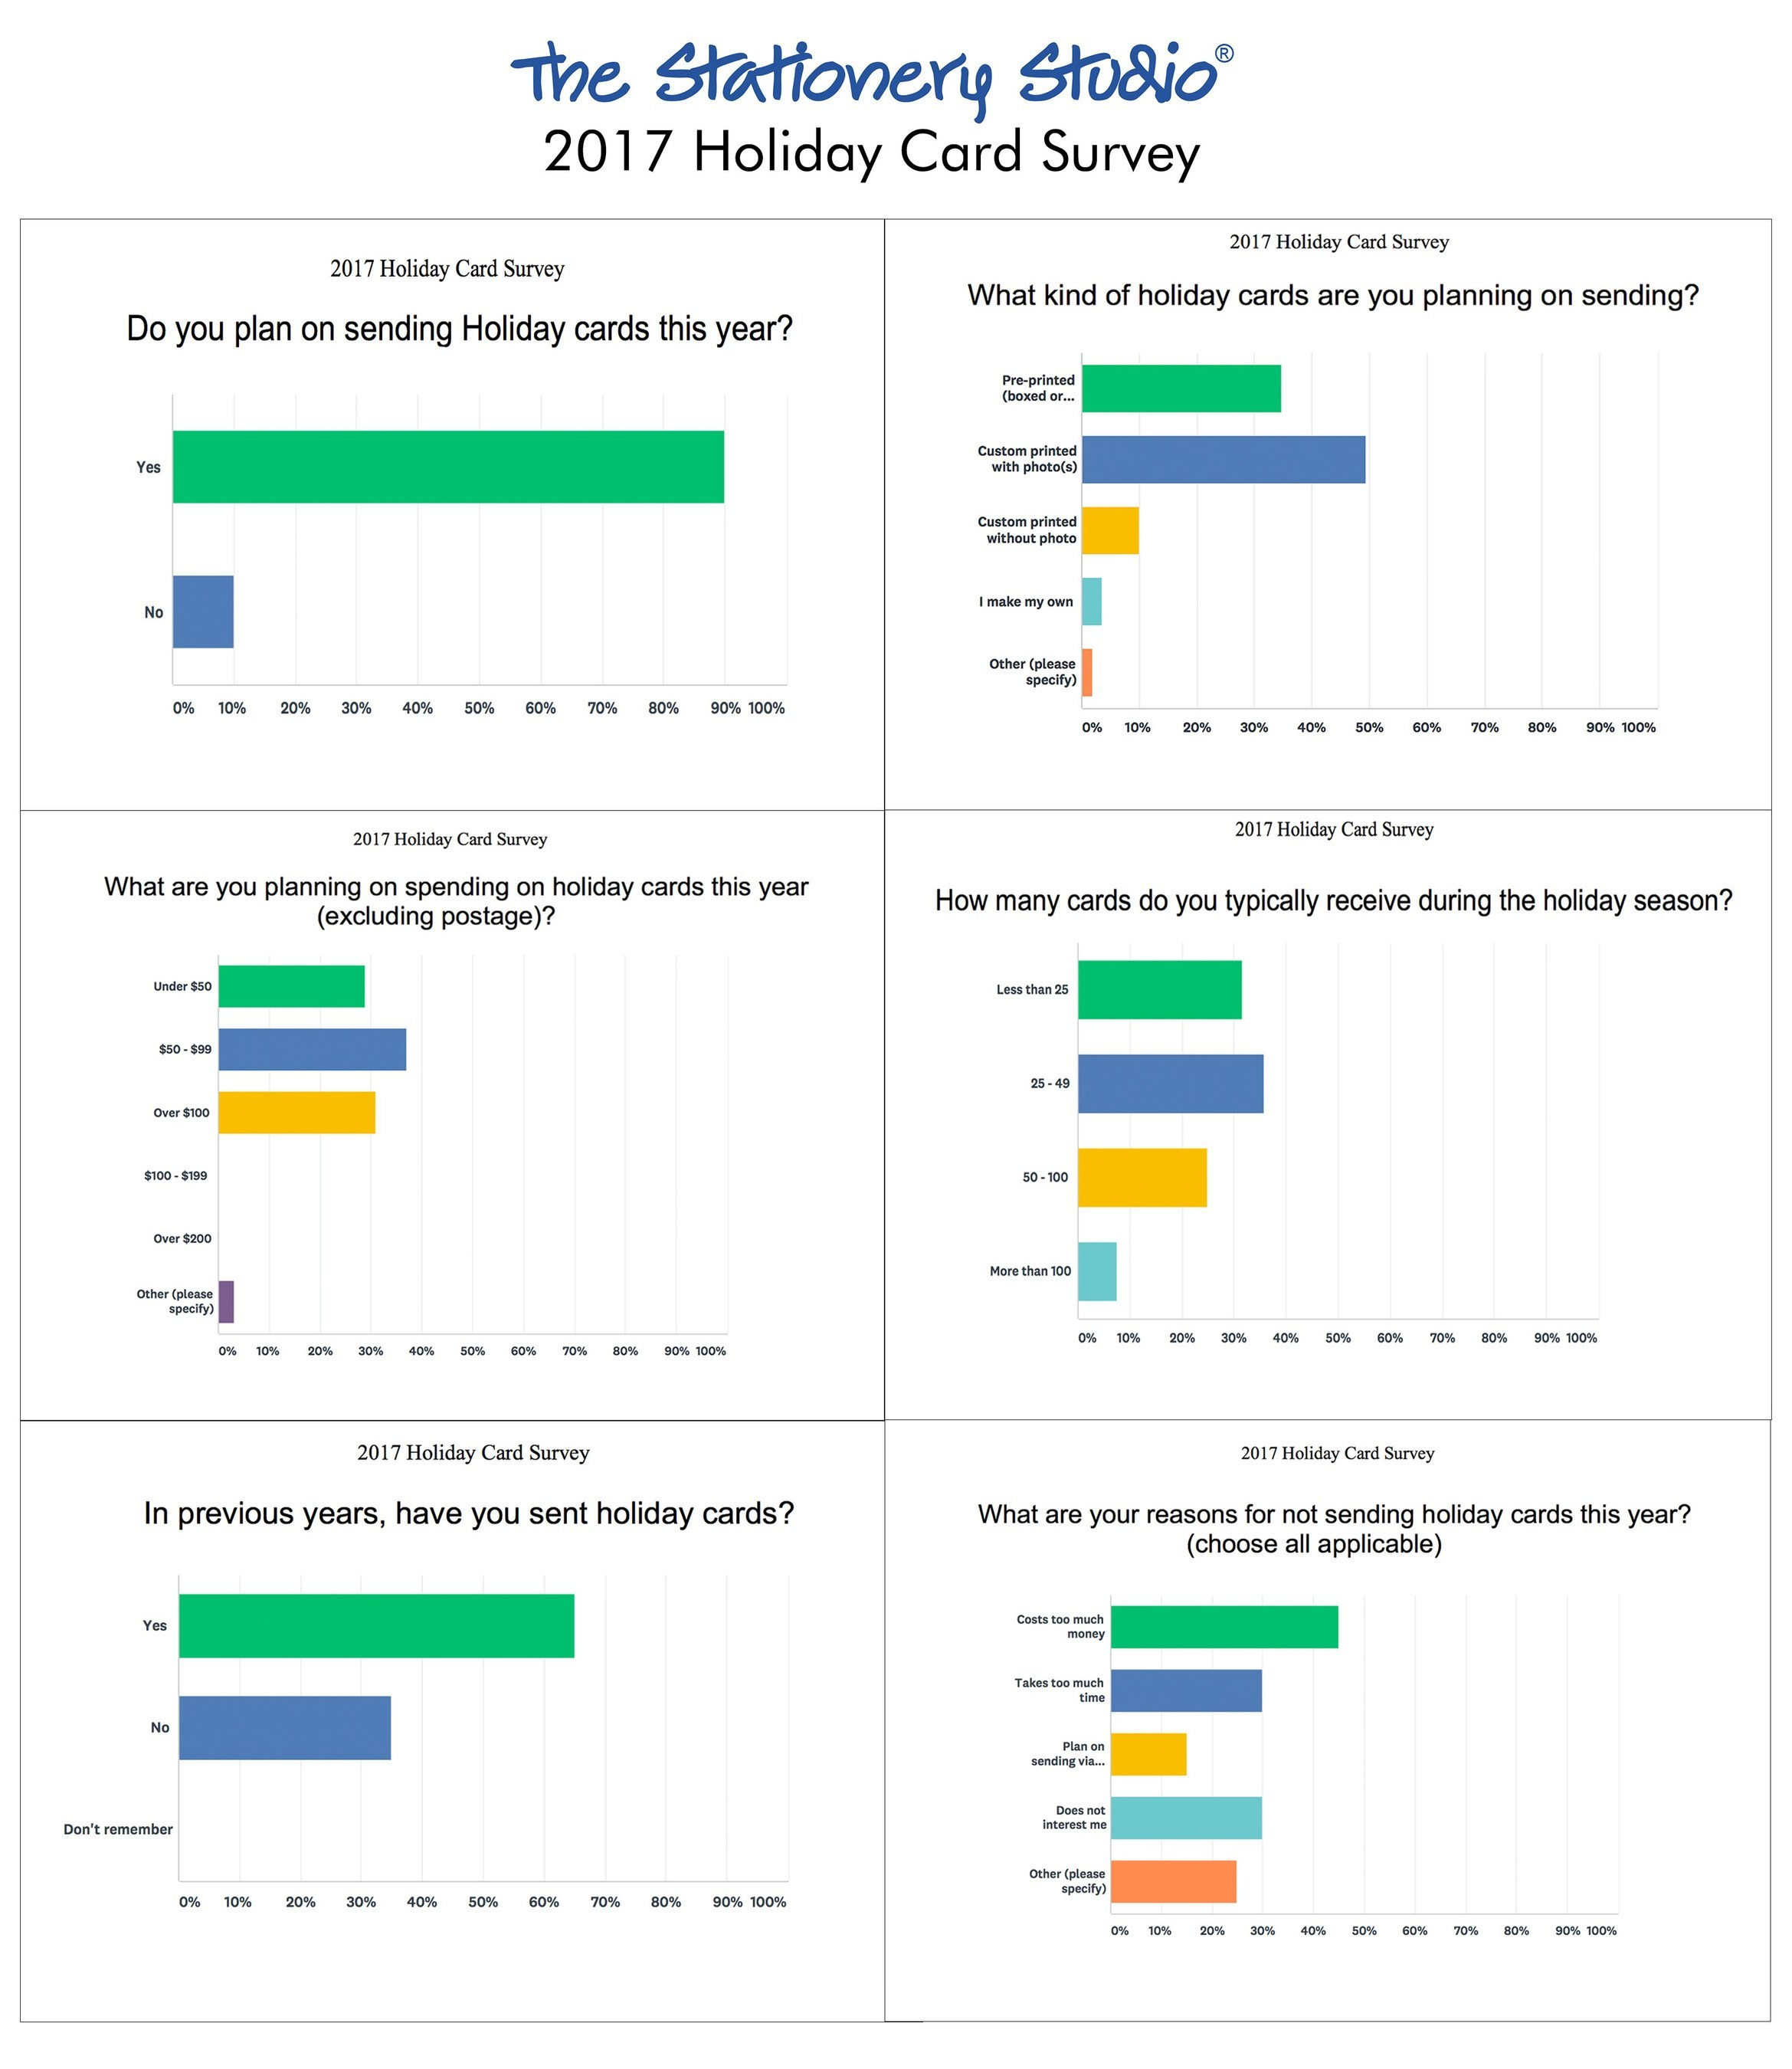 The Stationery Studio asked other questions (see composite graph) to learn more about people's perceptions and reasons for sending or not sending holiday cards.